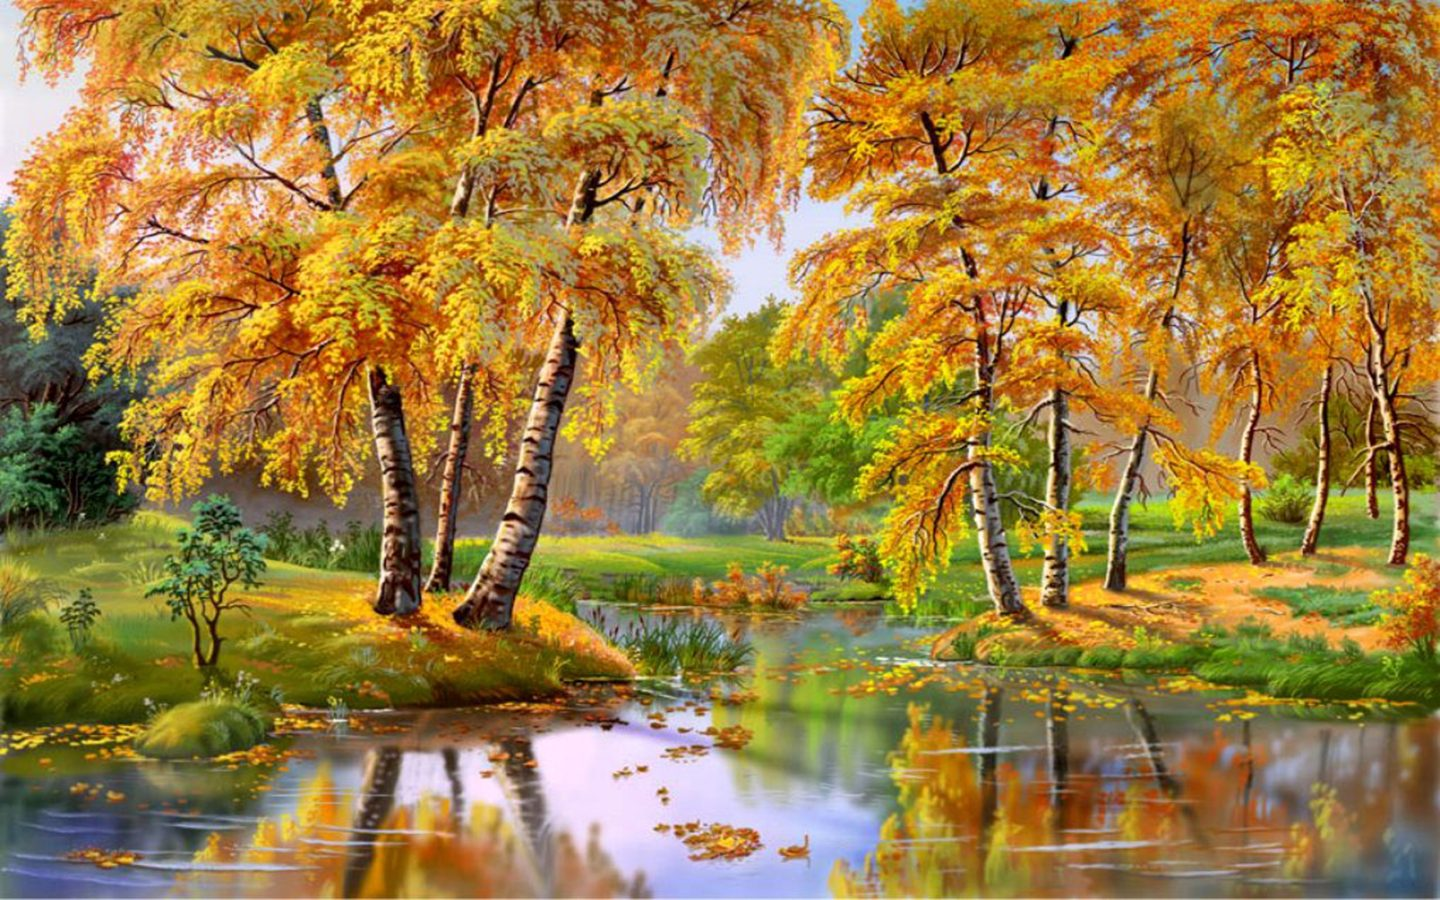 Fall Autumn Hd Wallpaper 1920x1080 Wonderful Autumn Landscape River Trees 087537